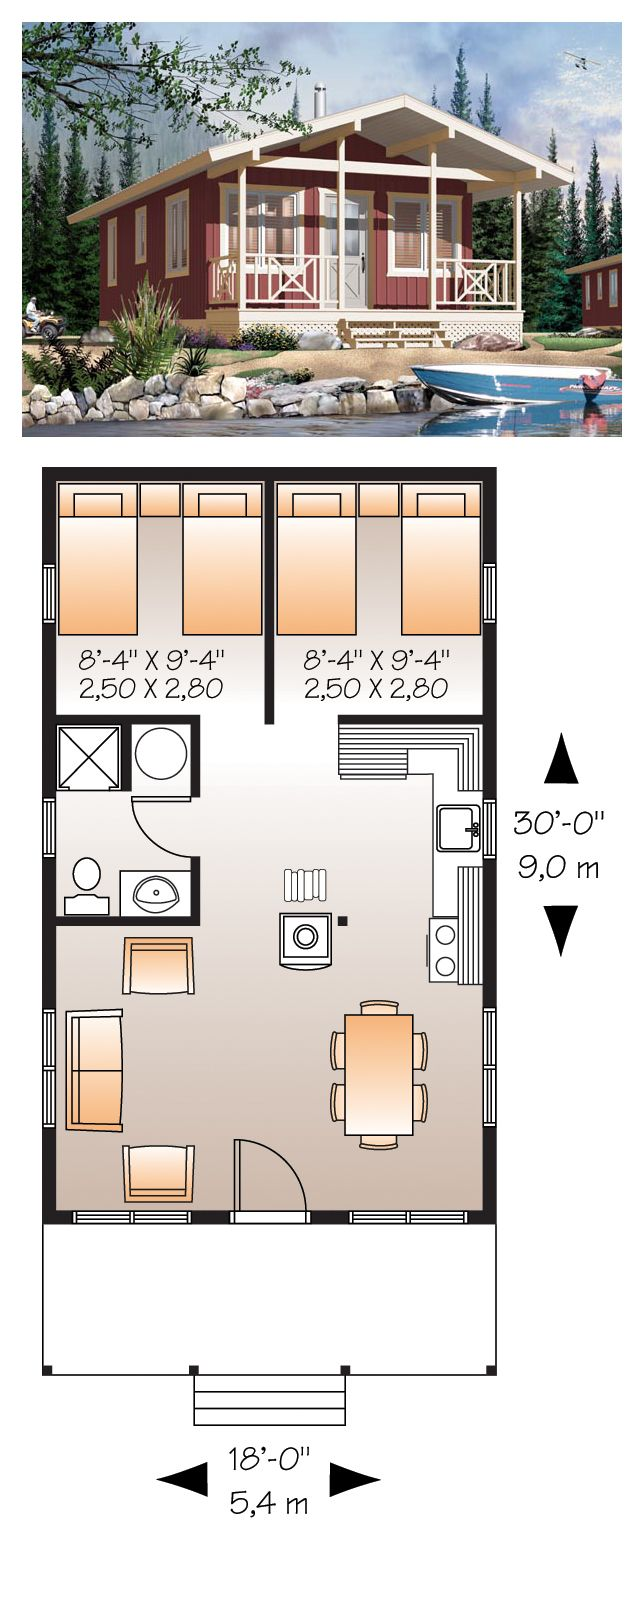 Best 25 Cabin Plans Ideas On Pinterest Small Cabin